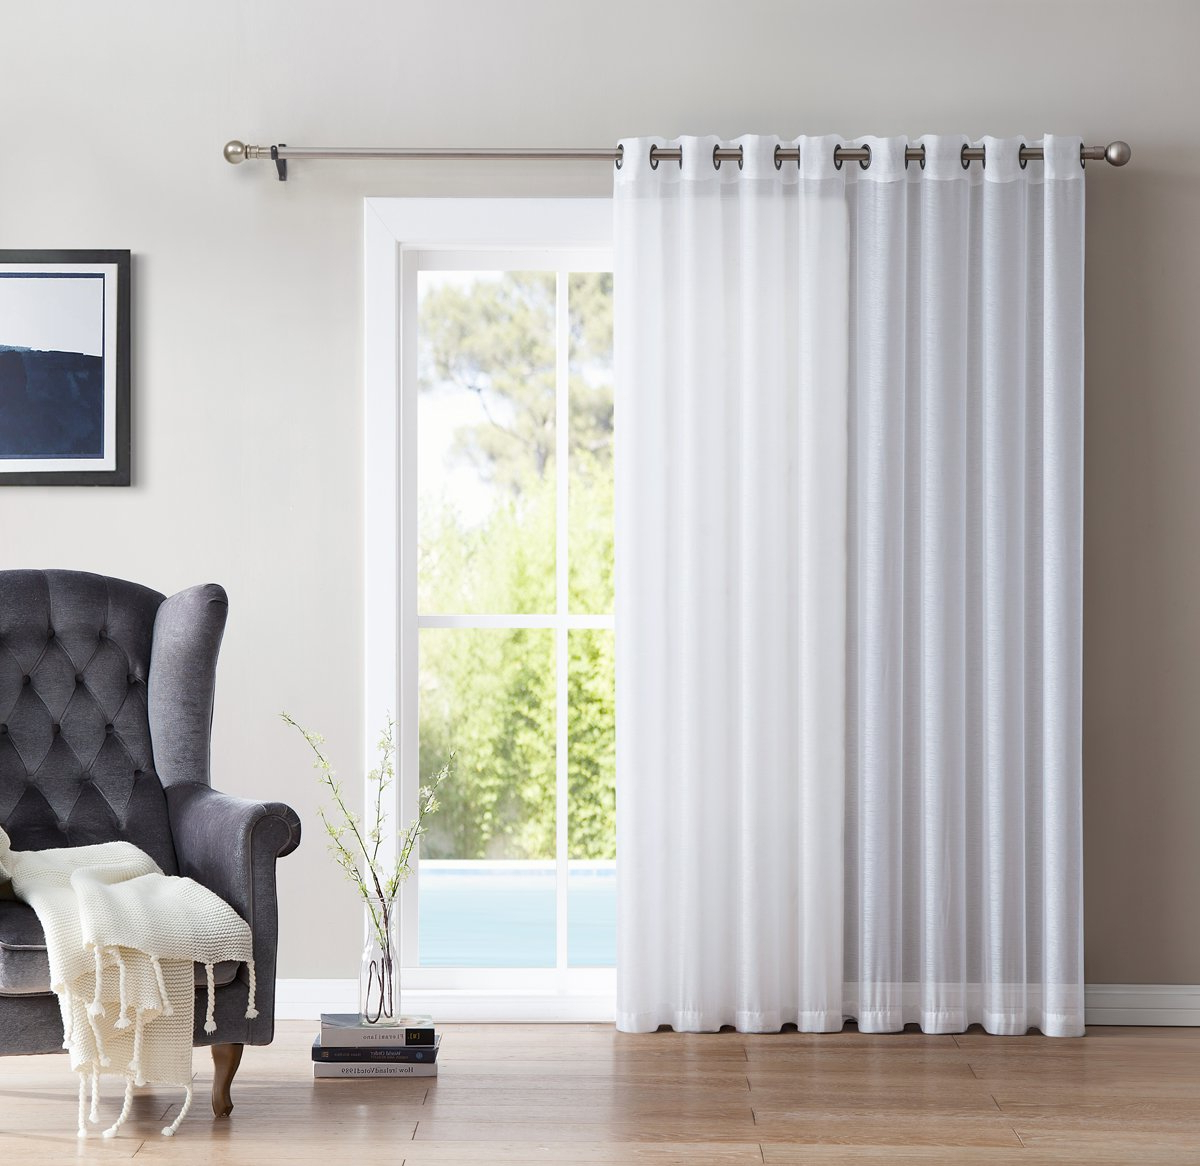 "Extra Wide White Voile Sheer Curtain Panels Pertaining To Most Recently Released Hlc One Panel Extra Wide Sheer Voile Patio Door Grommet Curtain Panel For Sliding Doors (white) – 100"" X 84"" Inch (View 9 of 20)"